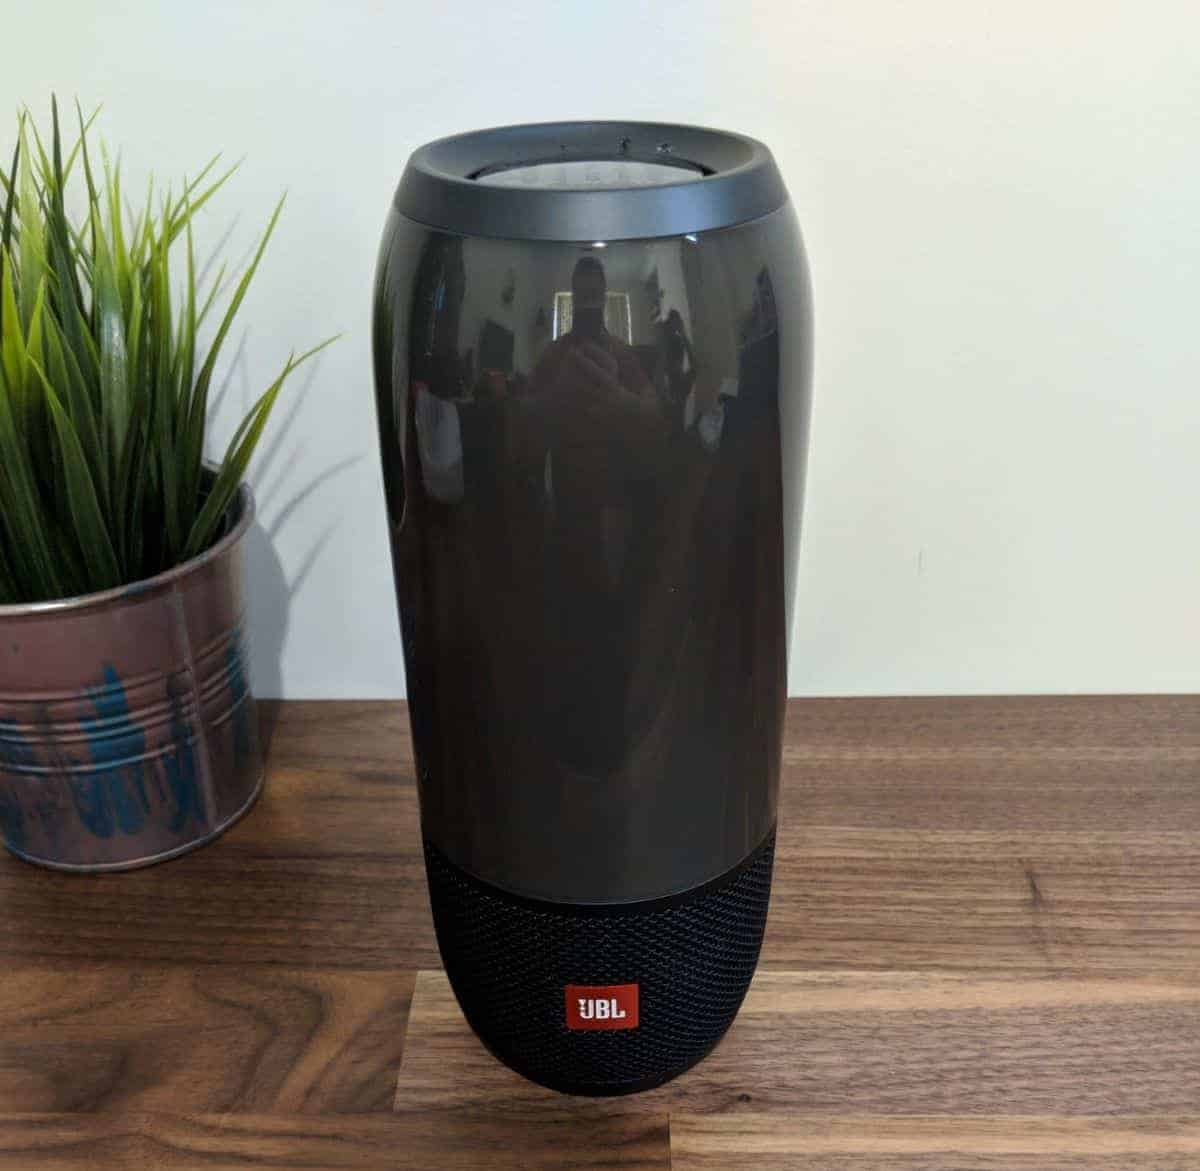 JBL-Pulse-3-Photos-15 JBL Pulse 3 Review